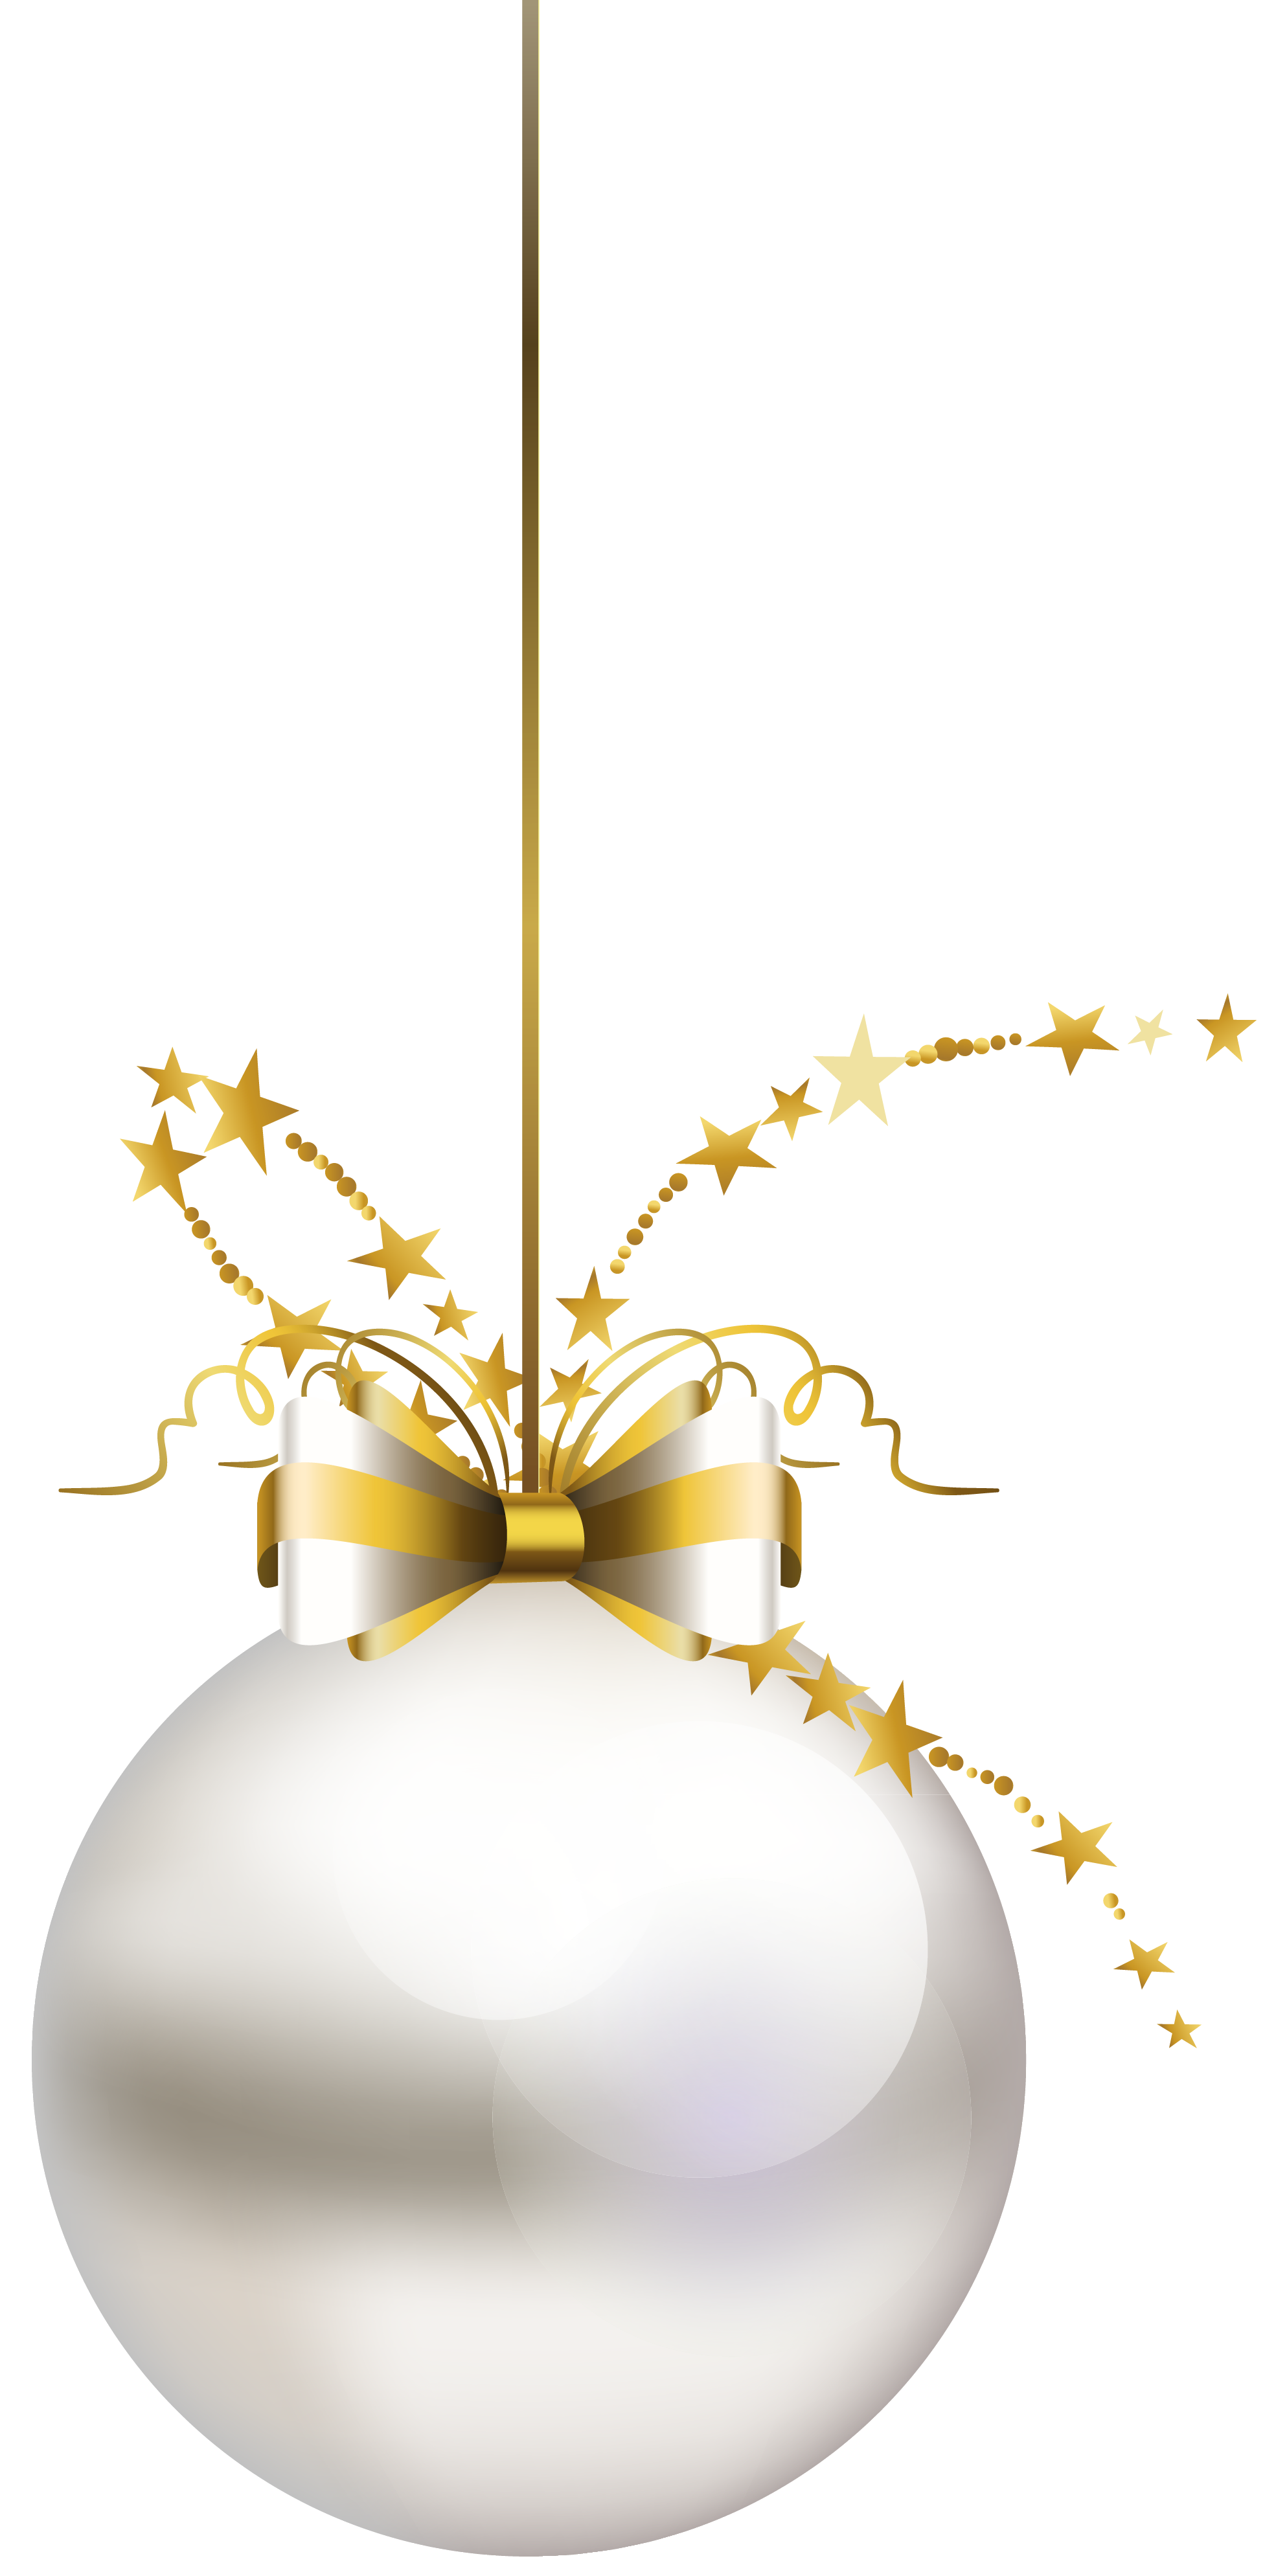 Transparent_Christmas_Ball_Clipart.png?m=1383001200.